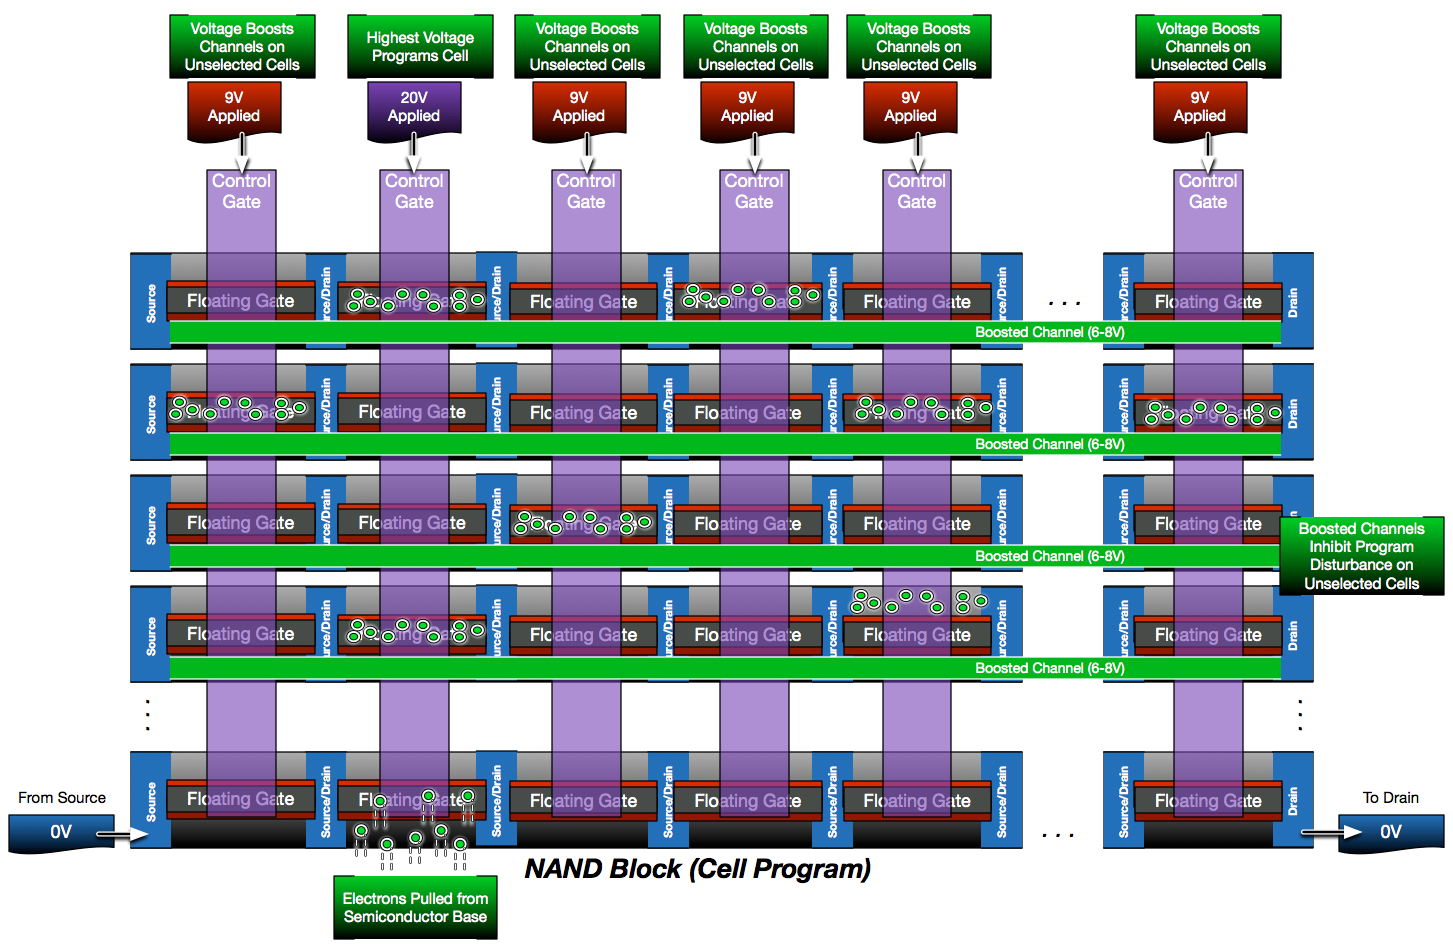 NAND Block Cell Program